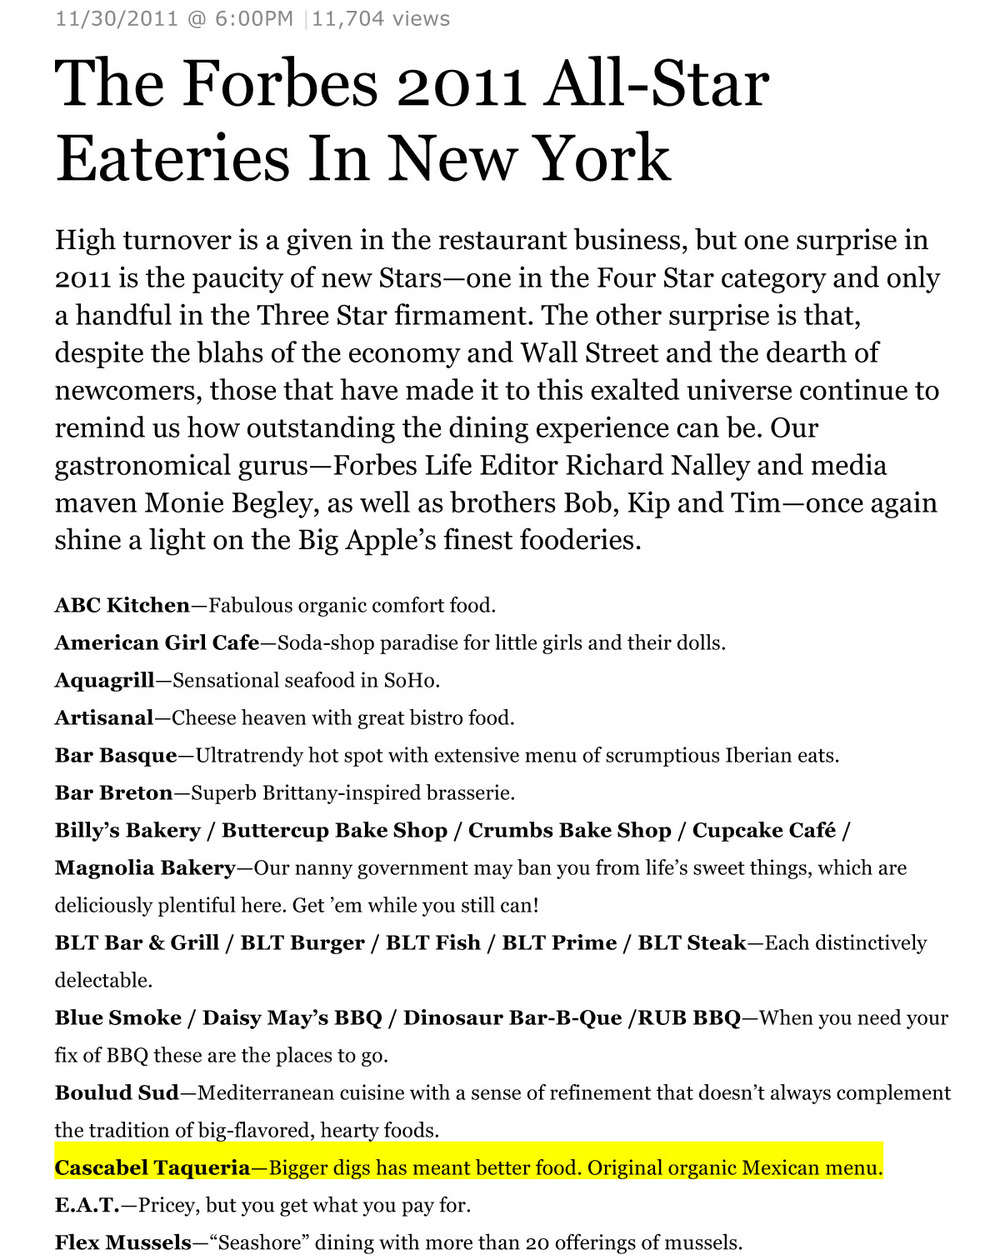 1Forbes 2011 All-Star Eateries.jpg